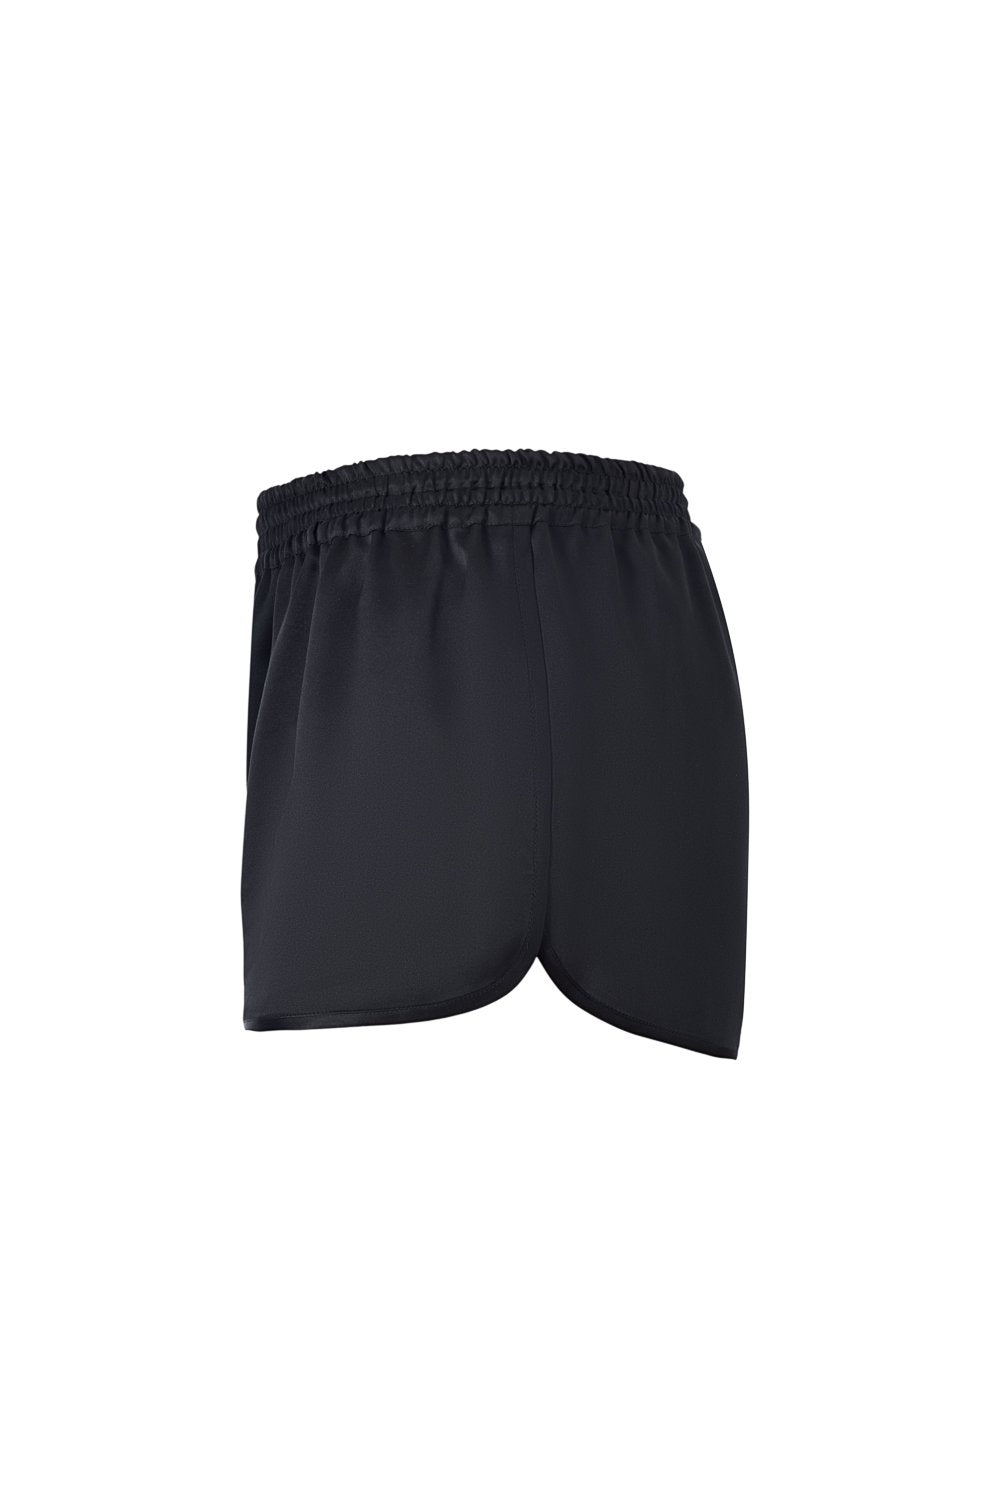 Silk Boxer Shorts For Him